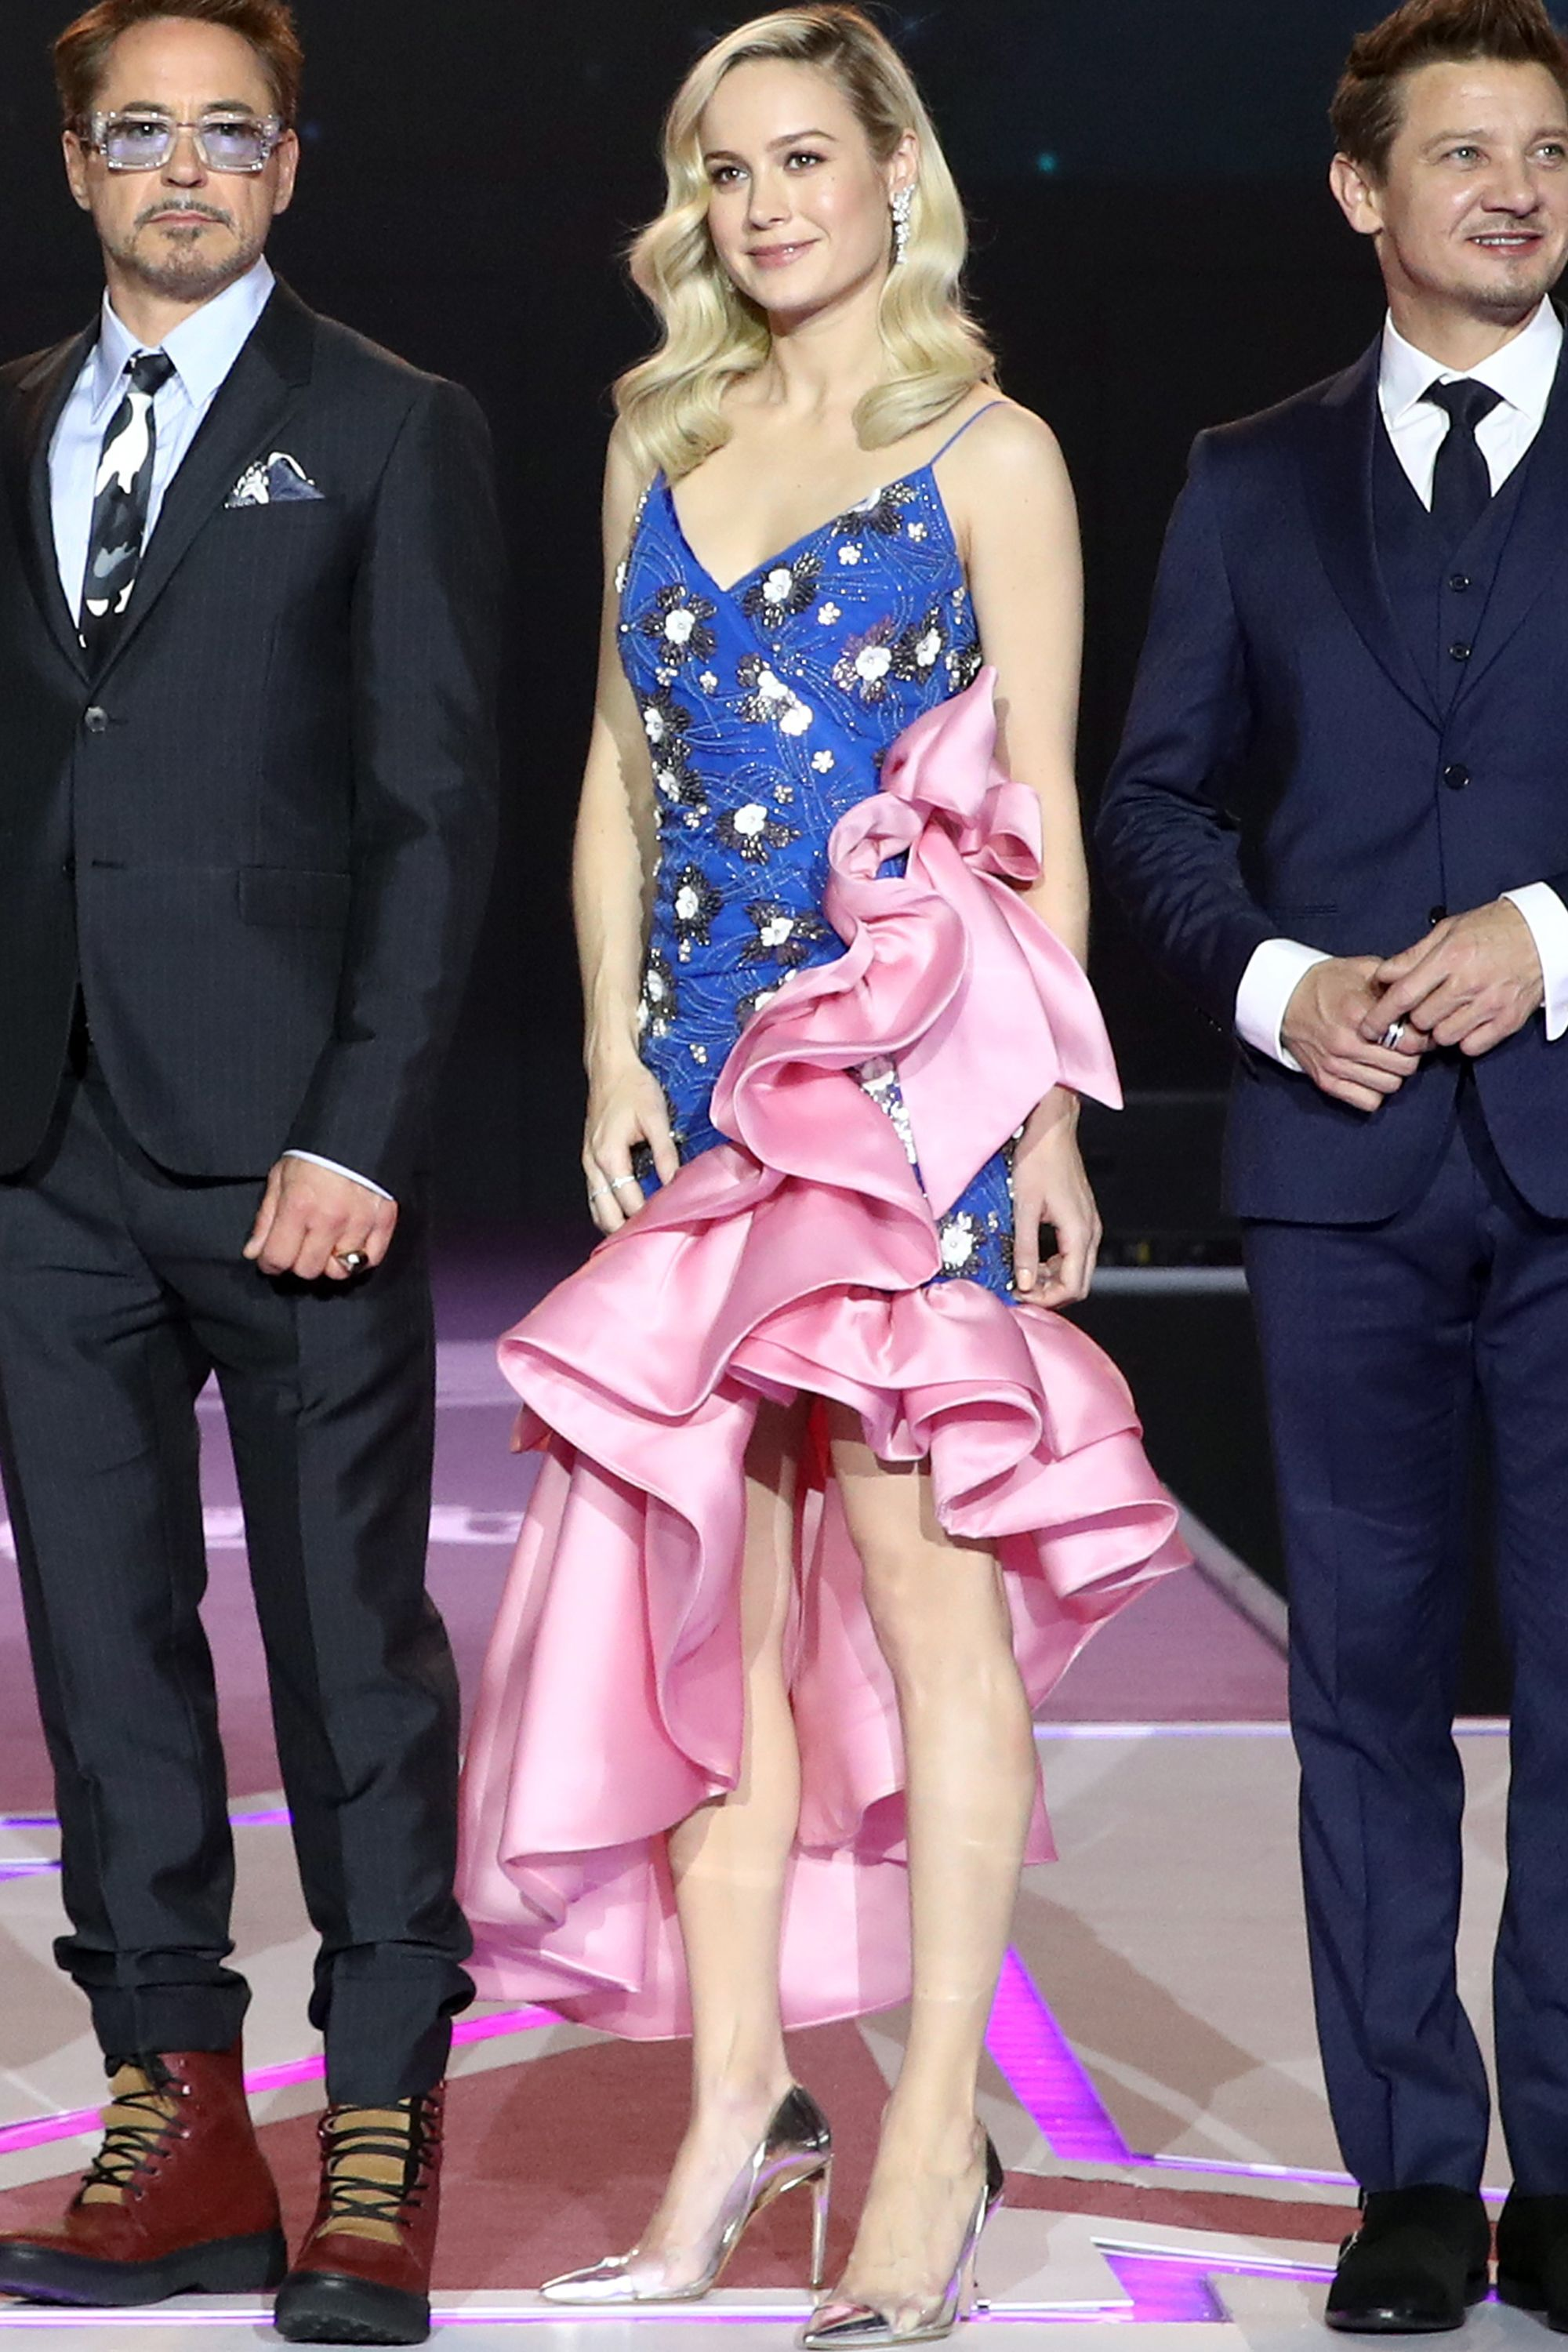 Who: Brie Larson When: April 15, 2019 Wearing: Rodarte Why: Promoting Avengers: Endgame in South Korea, Brie Larson wore an outfit that can only be described as Vanna White attending prom (which is basically the same thing). We are here for this prime example of '80s revival, which wins Larson best dressed of the week.